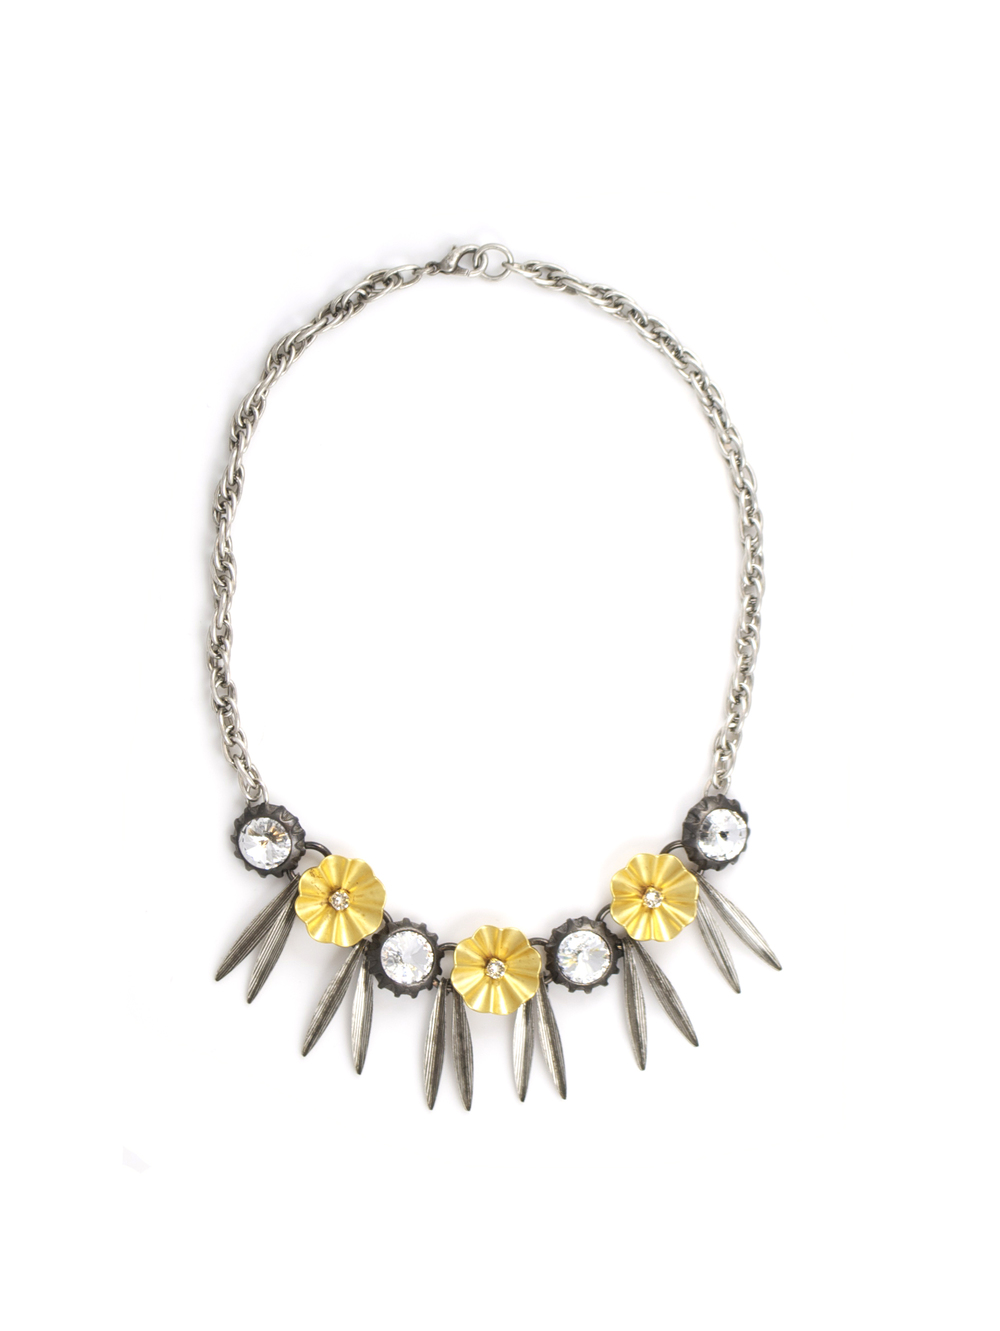 Flower Shower necklace, available at  Gerard Yosca .